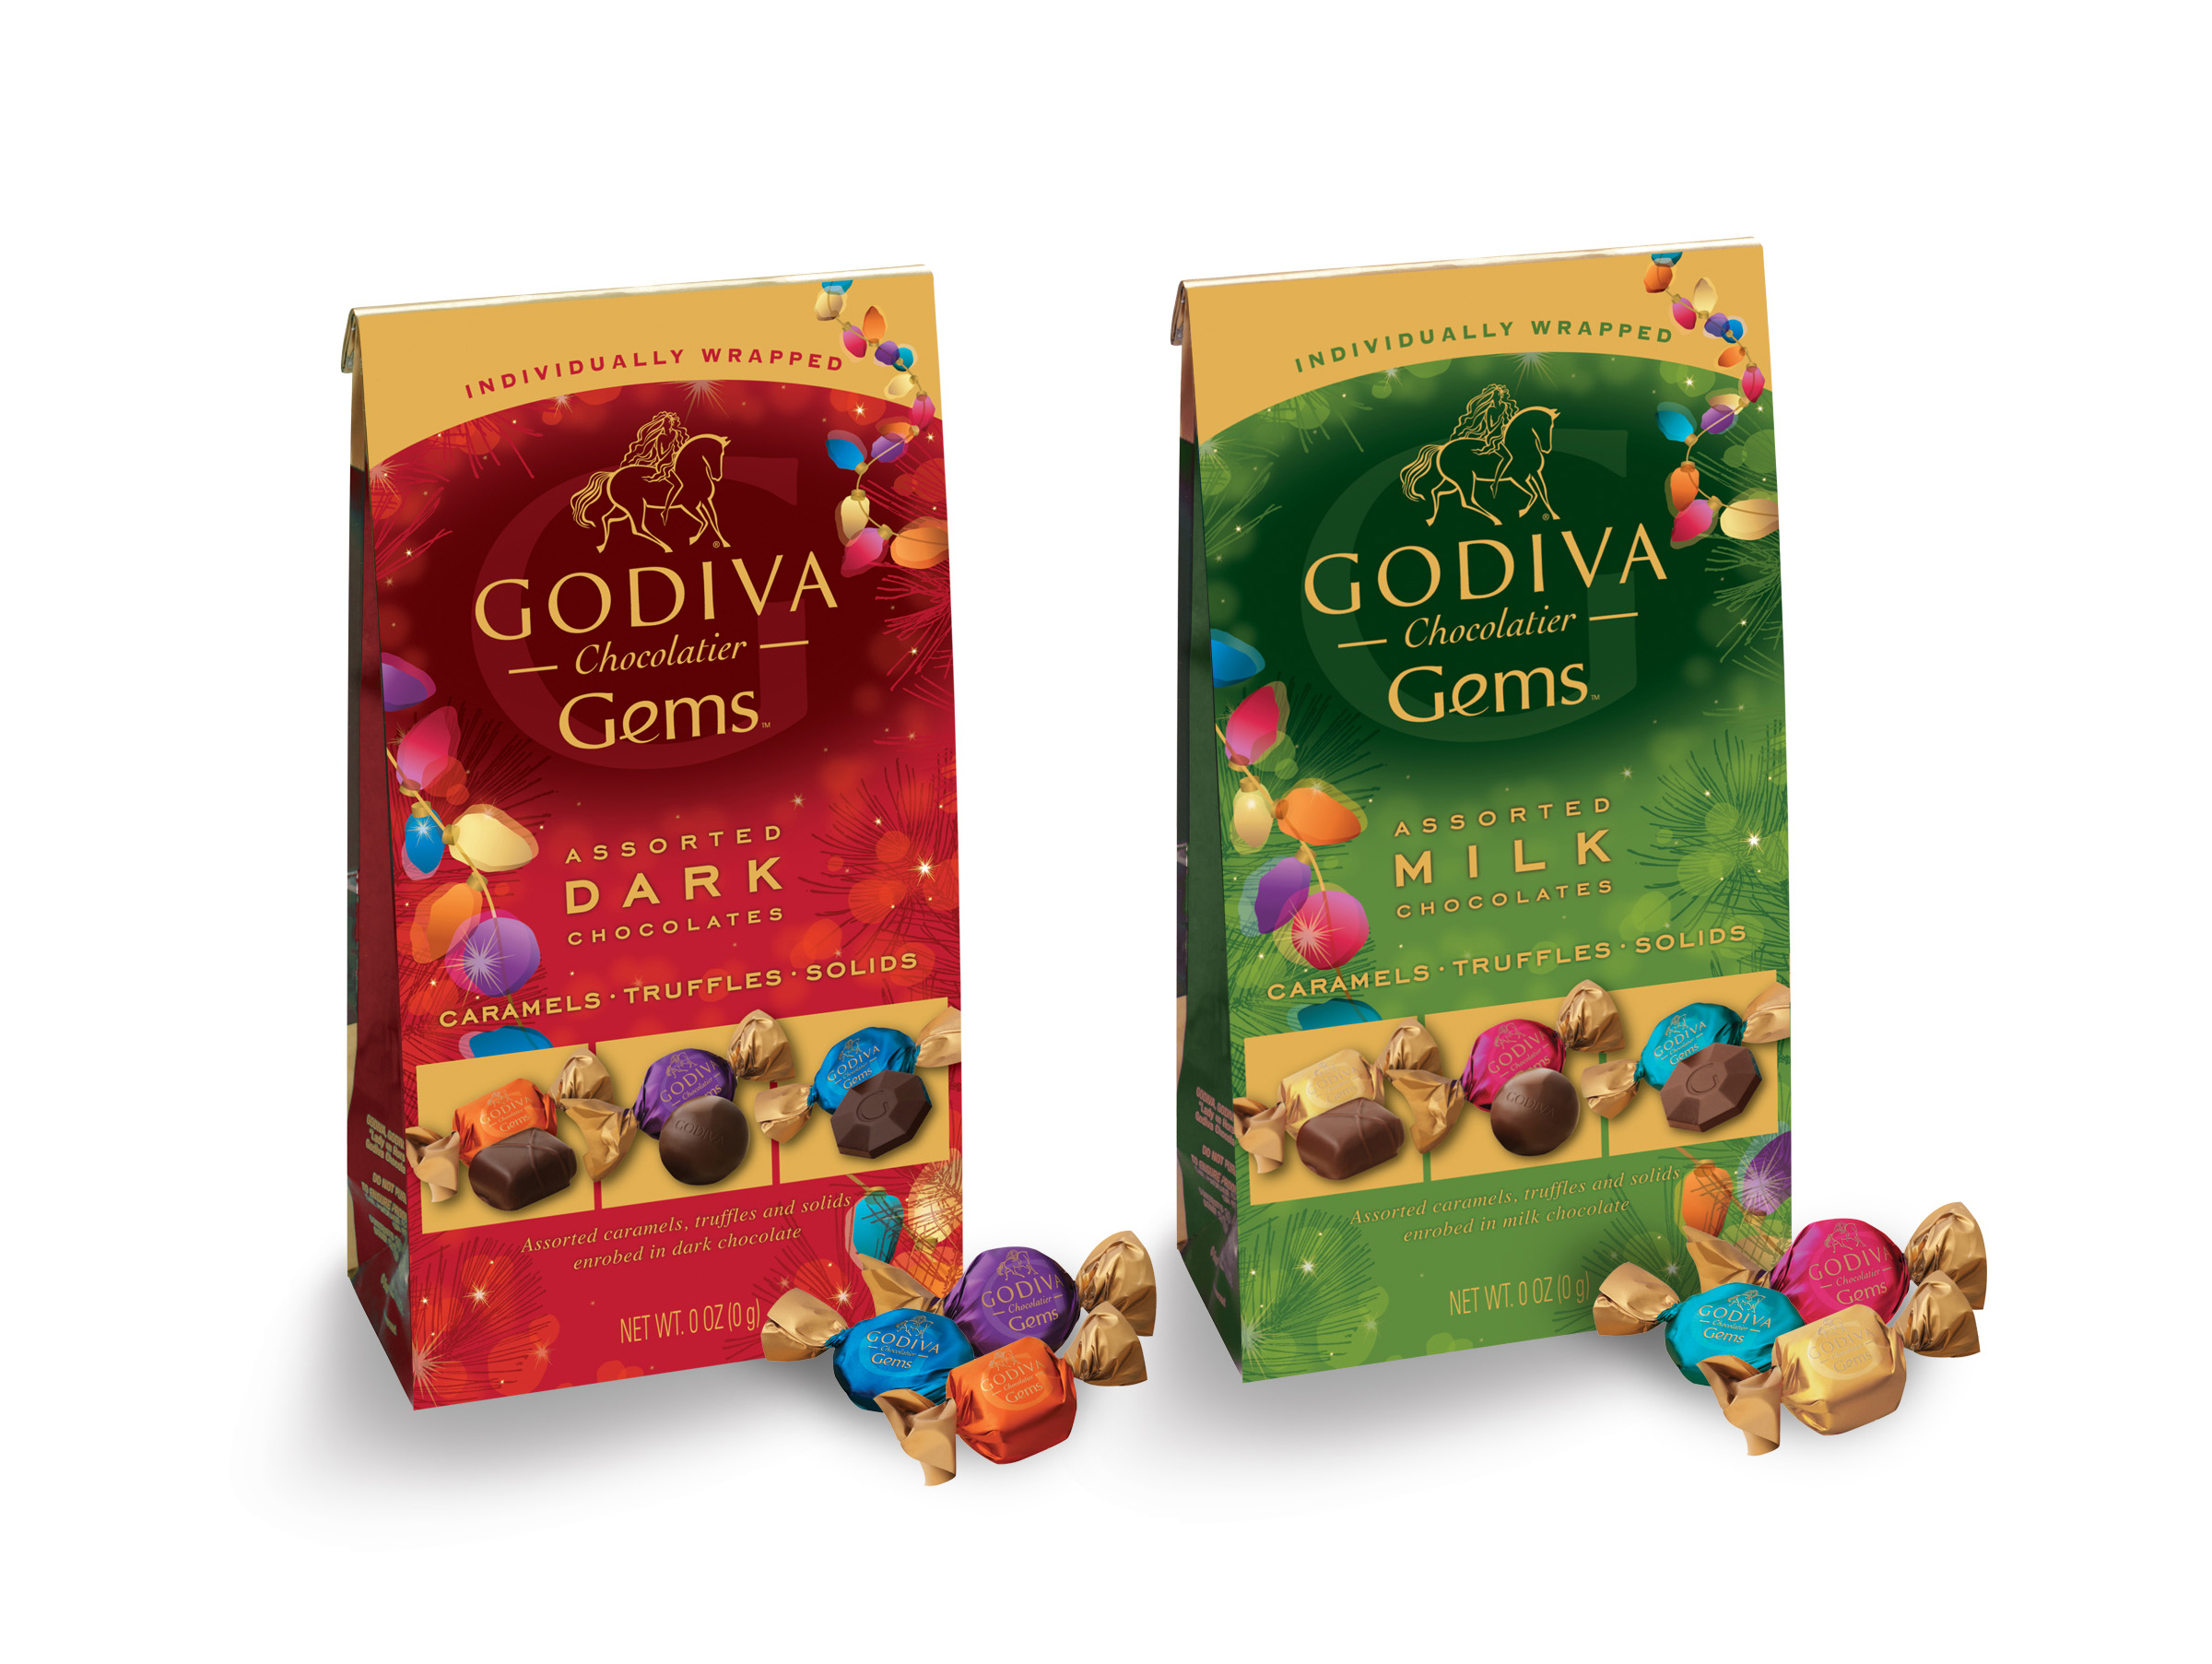 Godiva Gems Package Design - Holiday Assortments